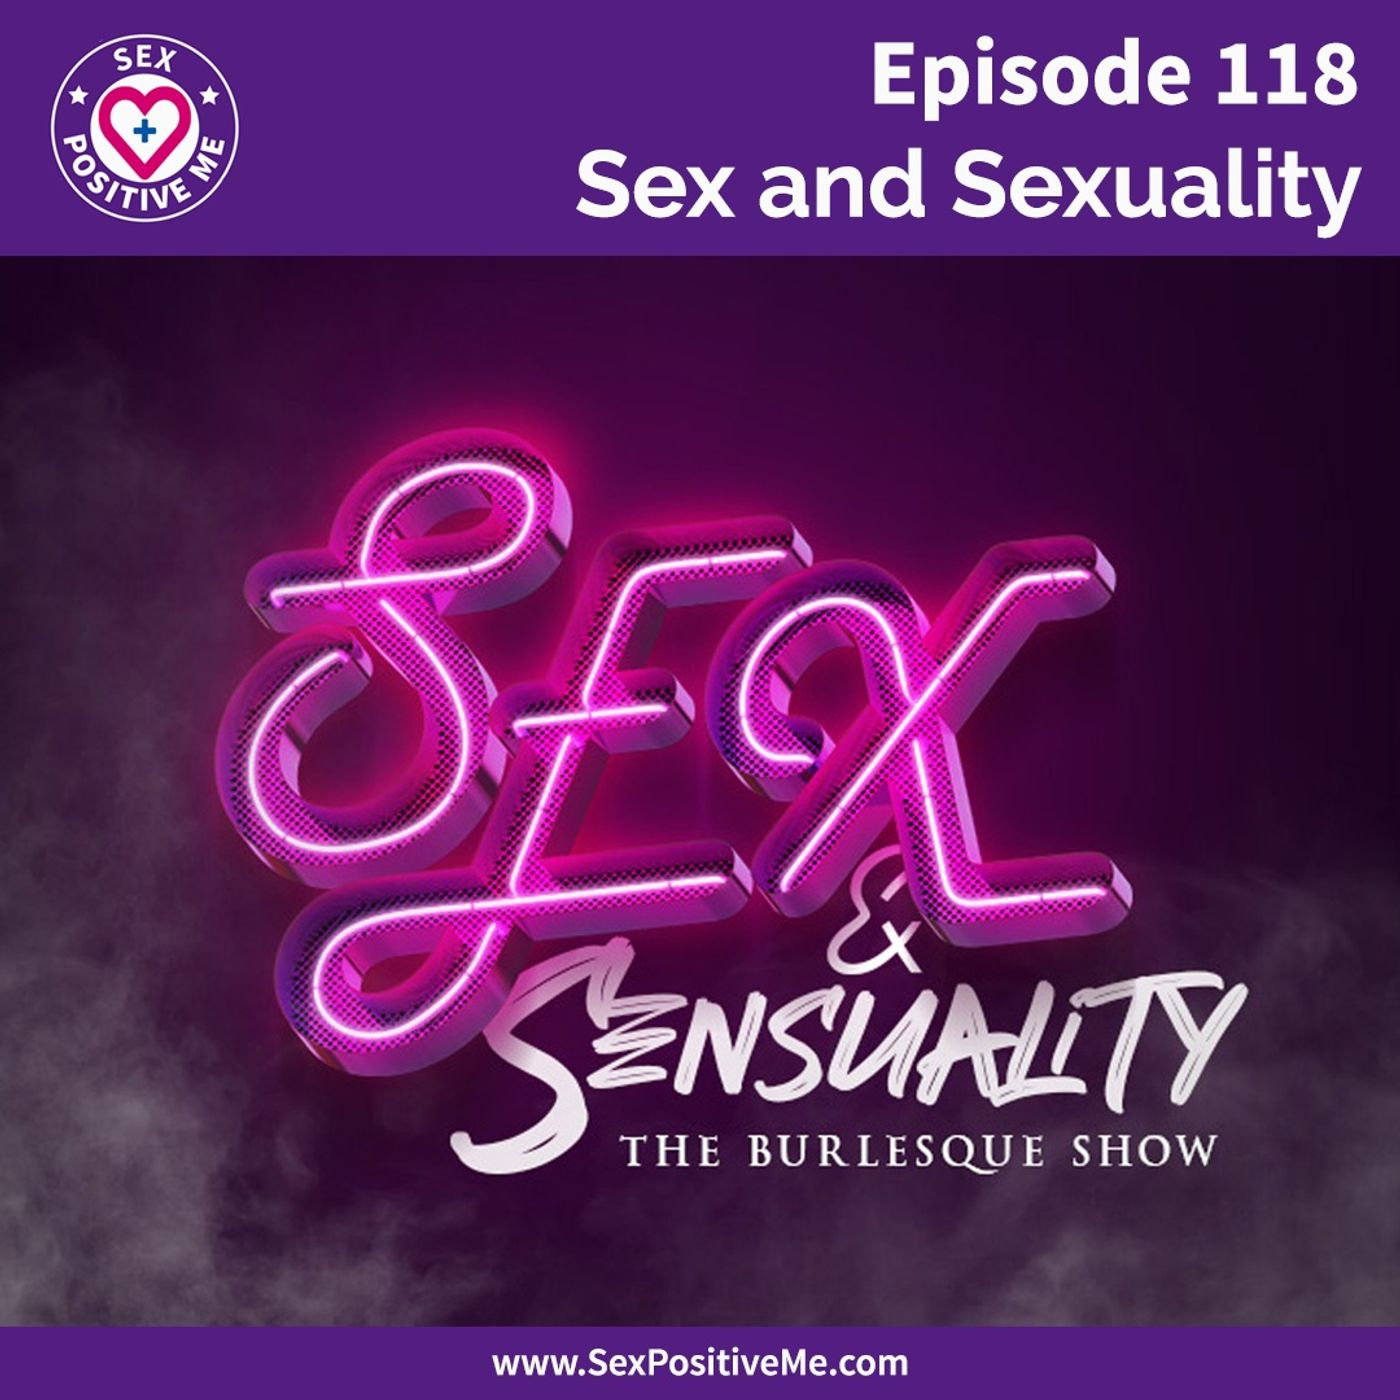 Sex Positive Me - E118: Sex and Sexuality, The Burlesque Show